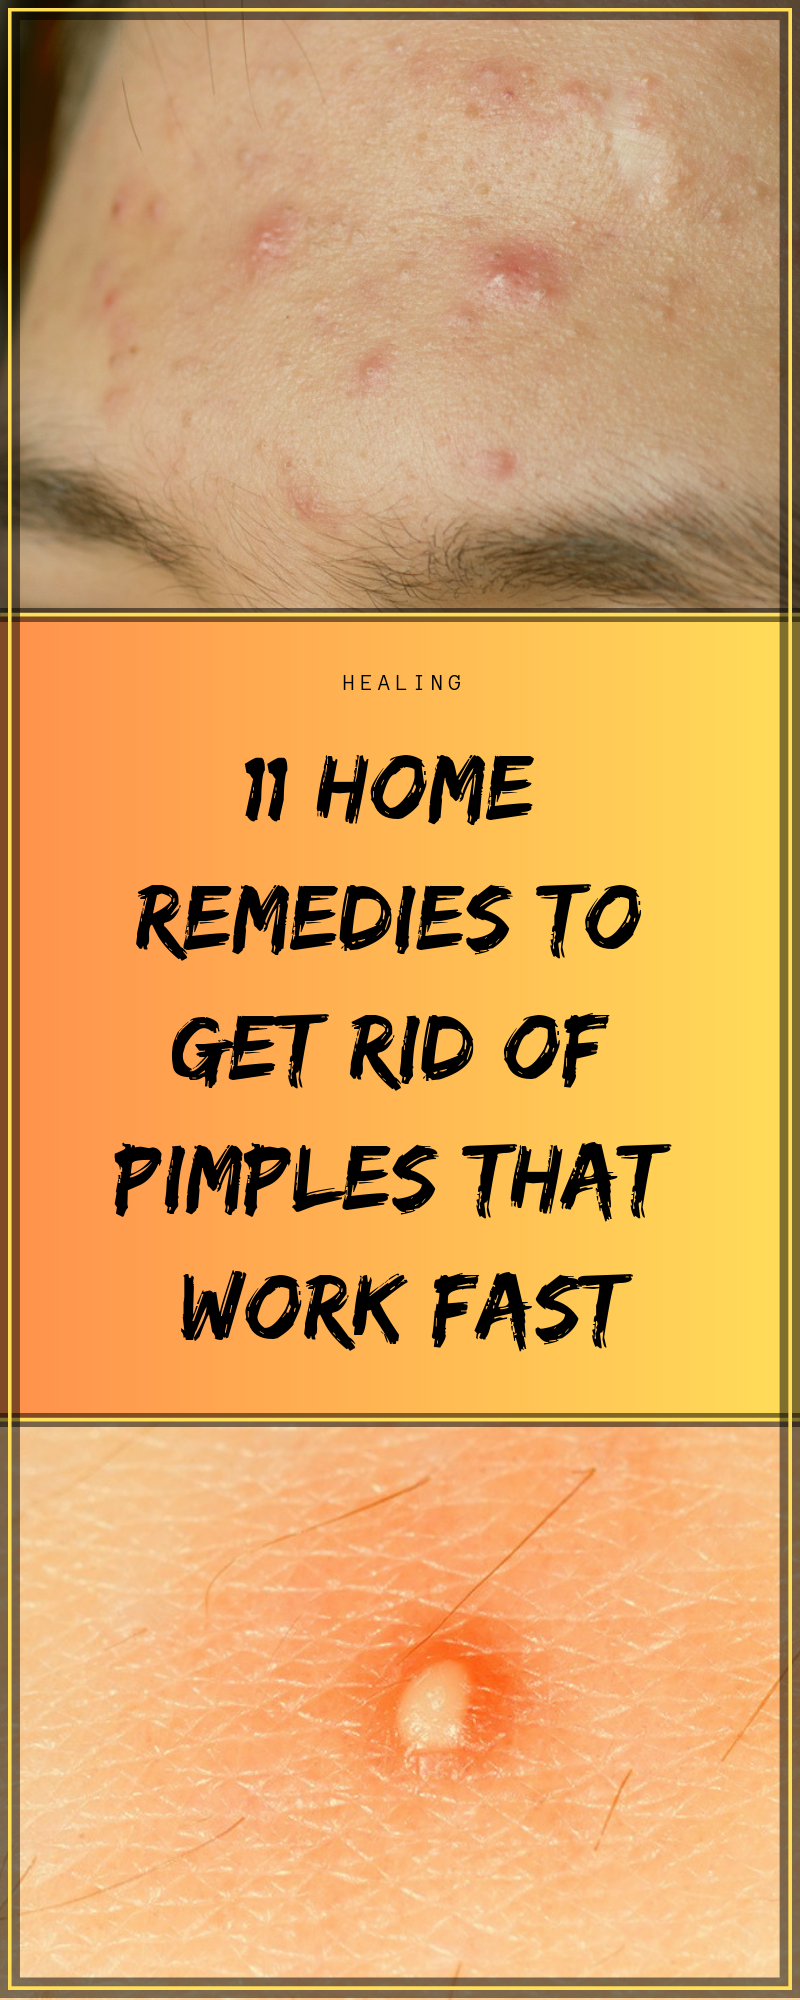 11 Home Remedies To Get Rid Of Pimples That Work Fast -   18 makeup Beauty remedies ideas